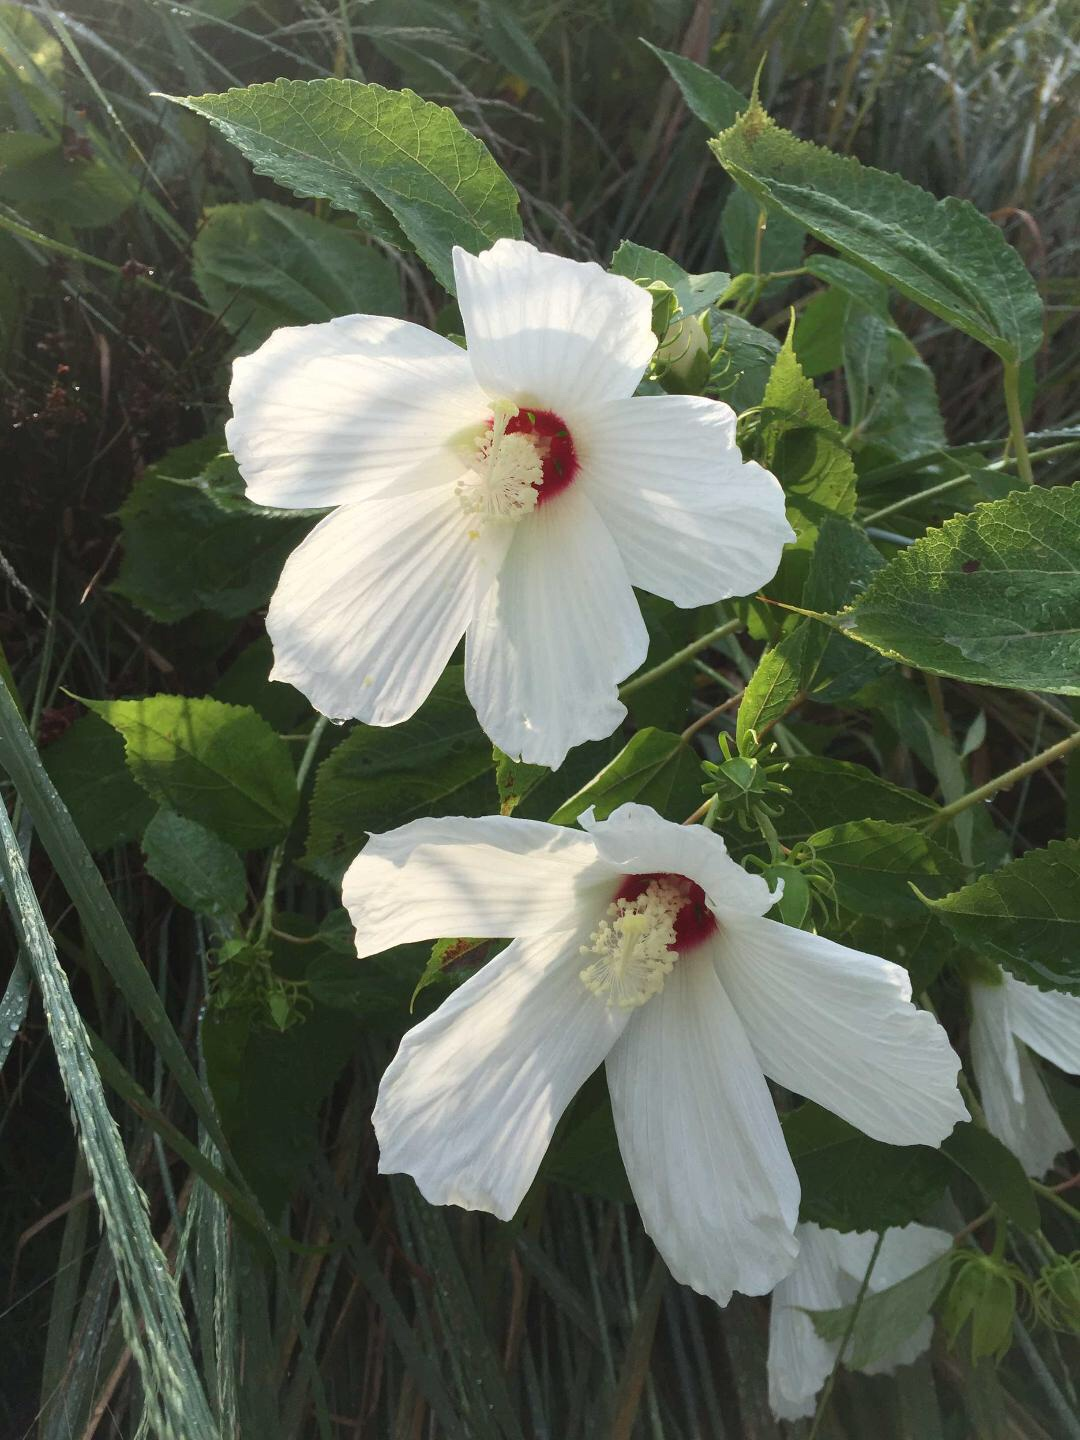 Swamp Rose-mallow (Hibiscus moscheutos). Photo by Betsy Washington